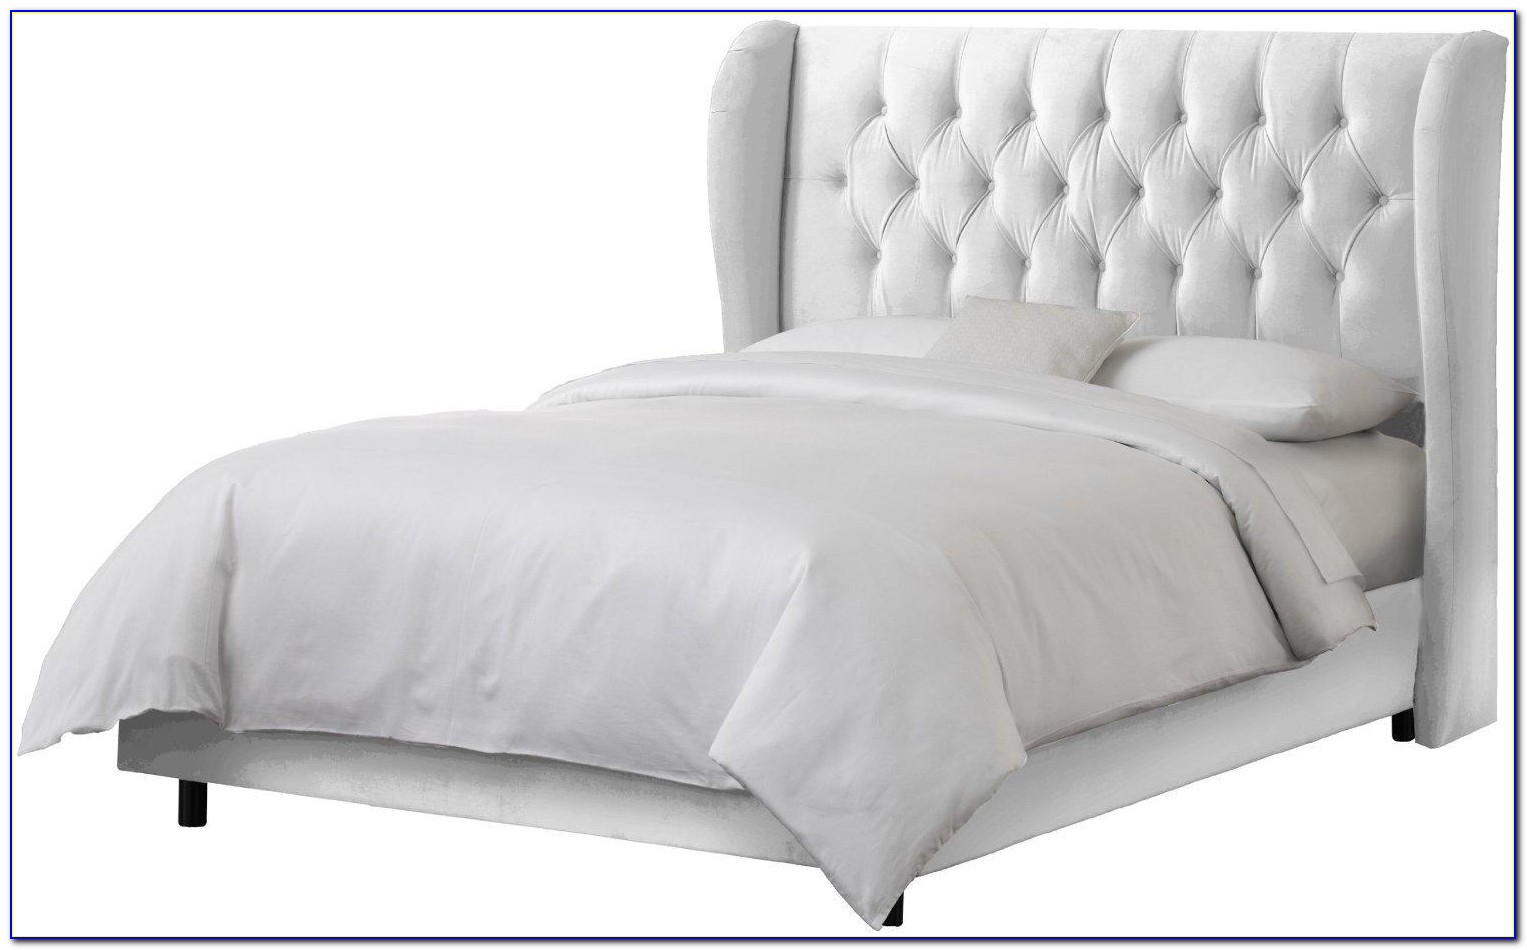 Queen Size Upholstered Headboard Dimensions